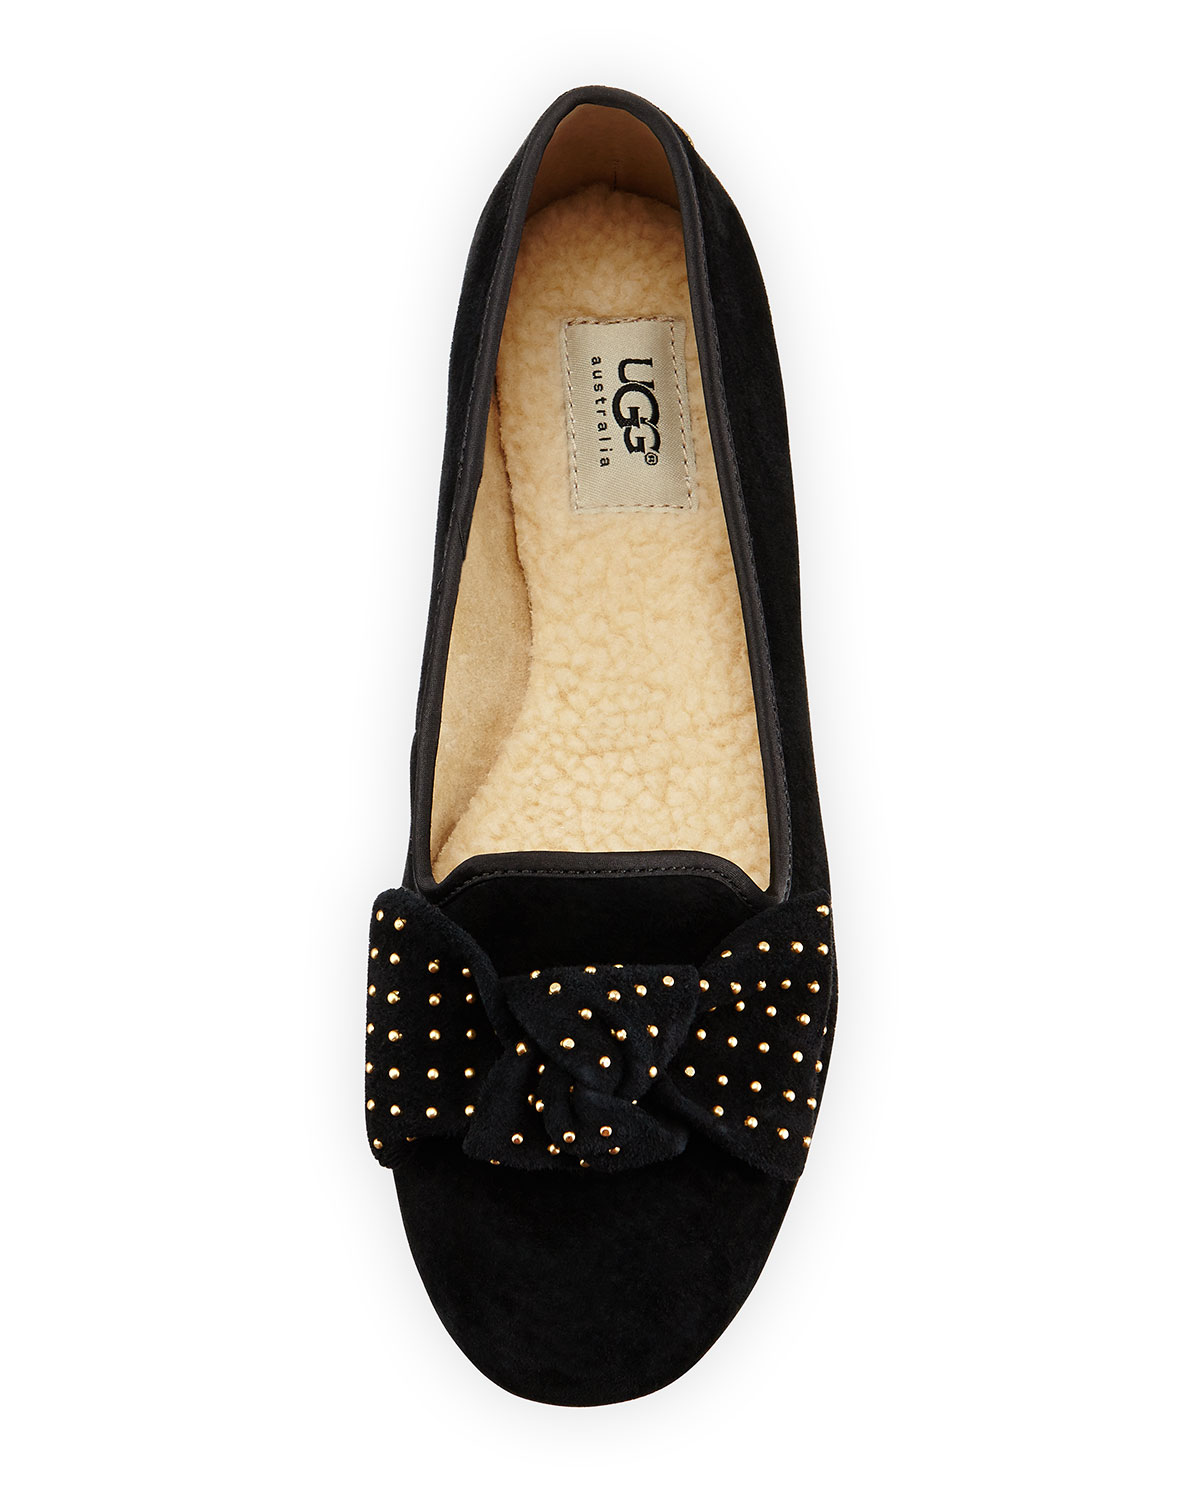 87b785d91cb Alloway Stud-Bow Suede Flat, Black